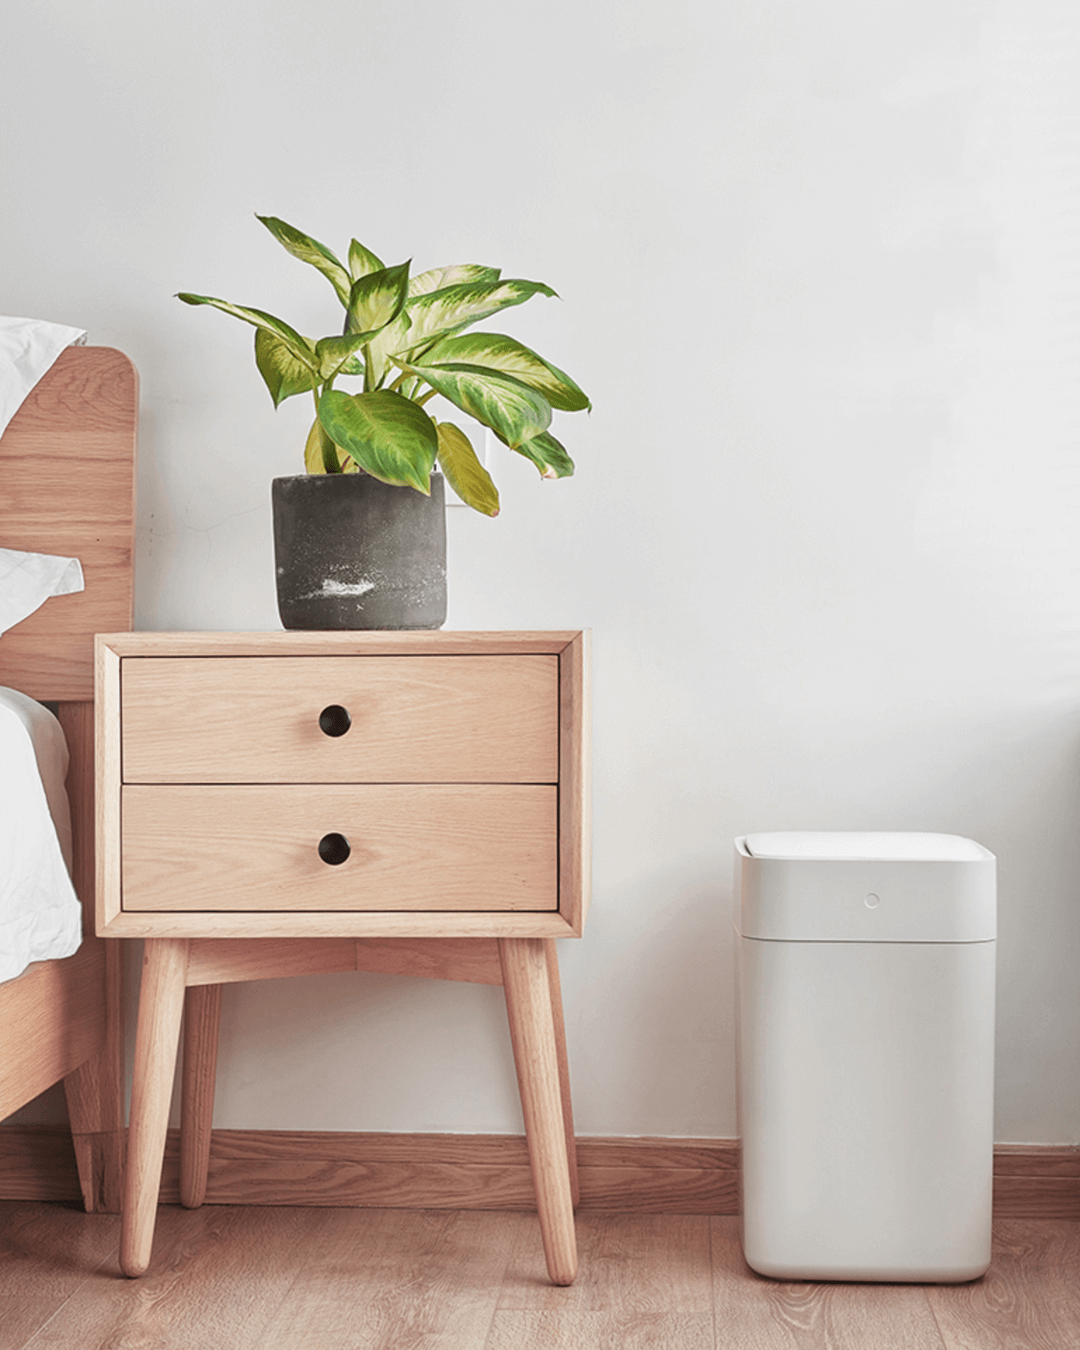 Townew T1 automatic trash can